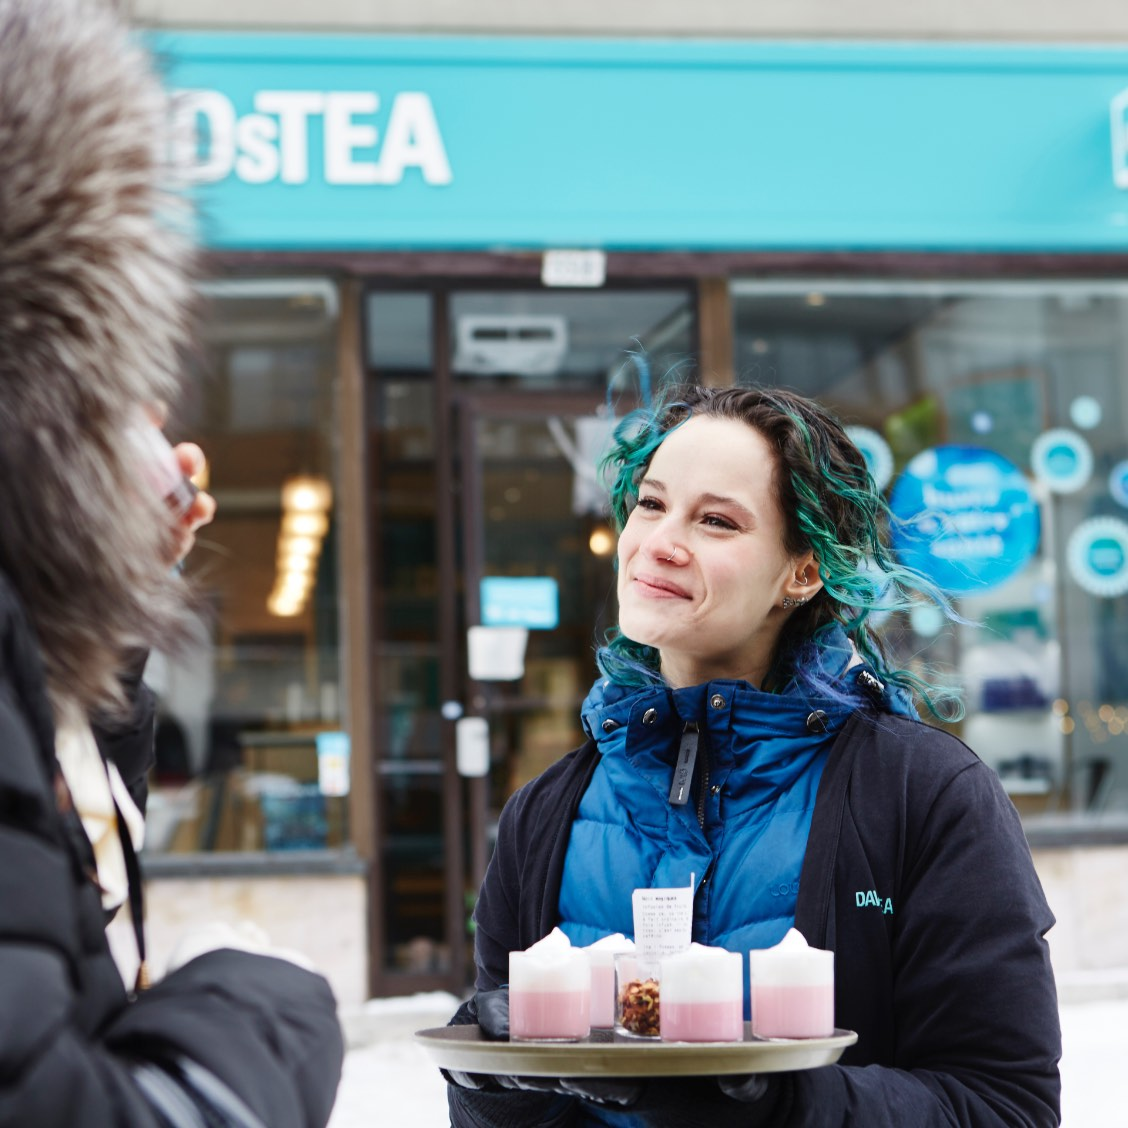 An employee holds a tray of tea latte samples outside a DAVIDsTEA store, she's smiling ear to ear.